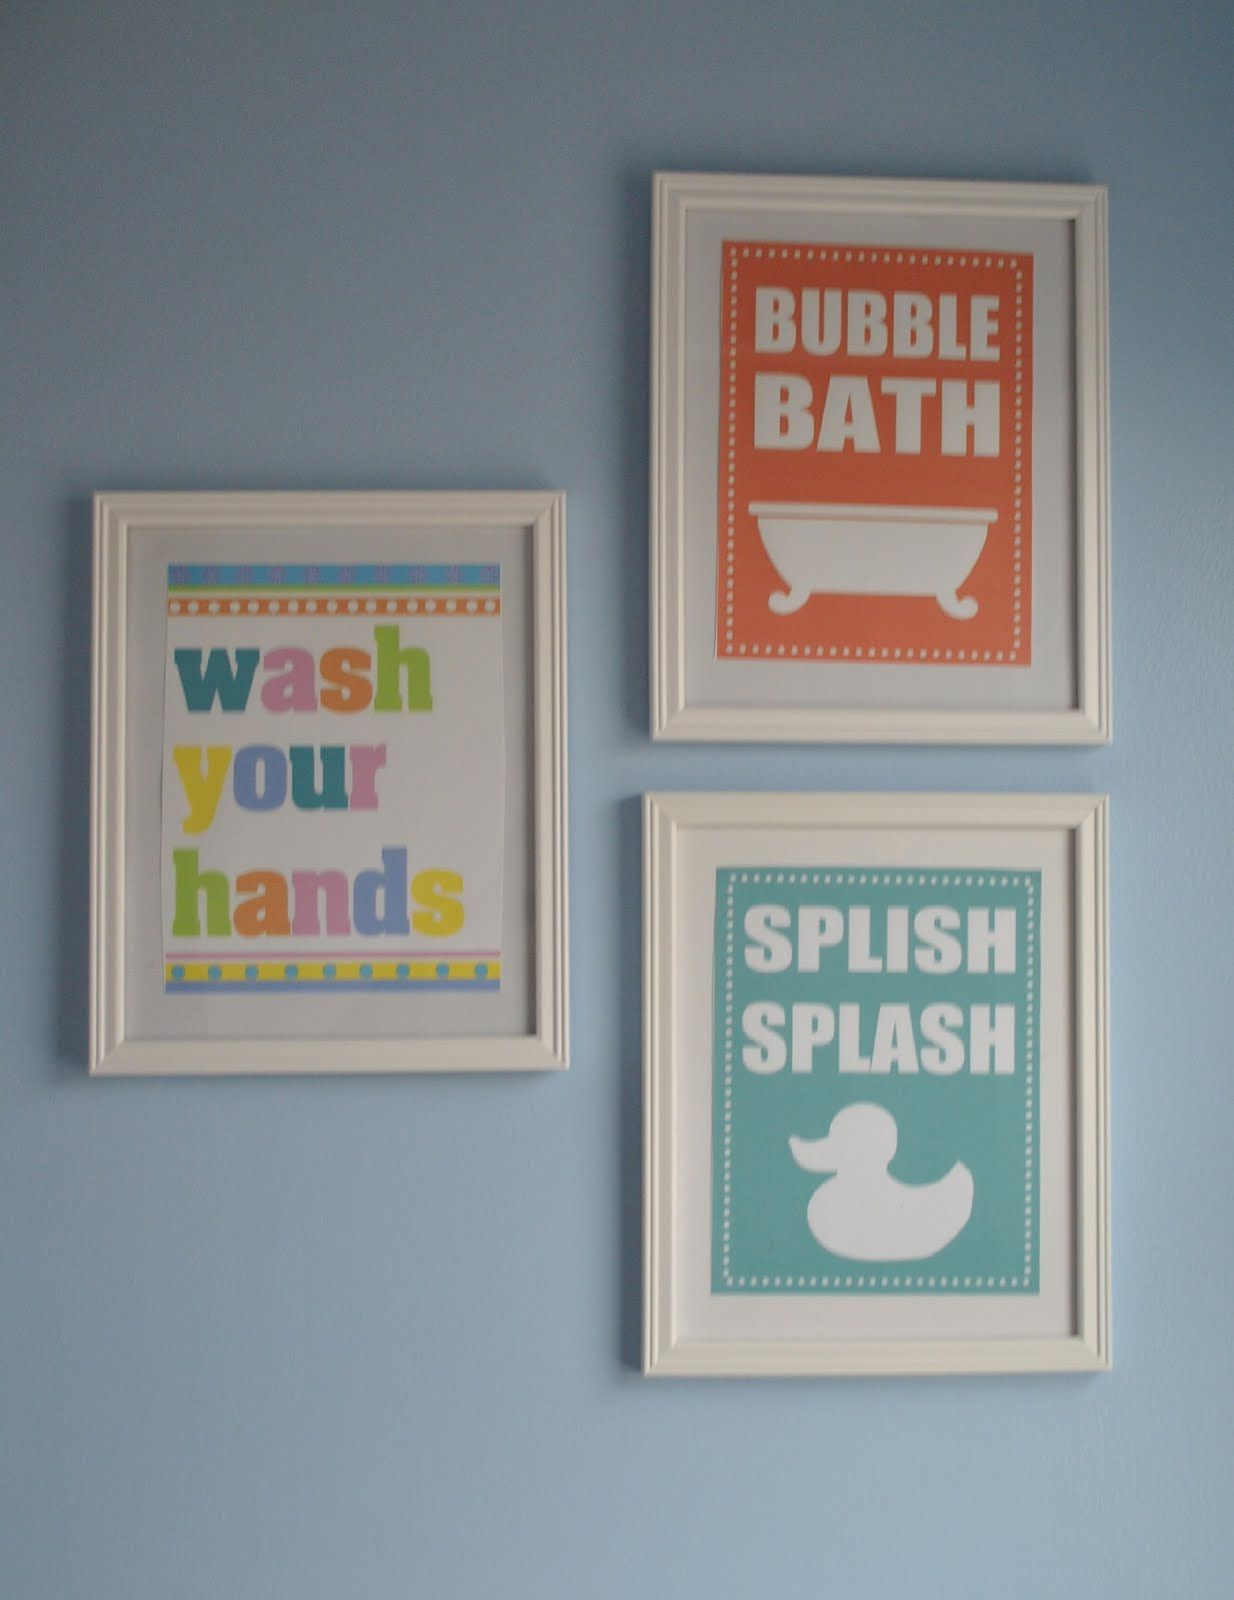 Bathroom wall art printables - Free Printable Wall Art Inexpensive Easy Fun Art Thanks Pinterest Below Art